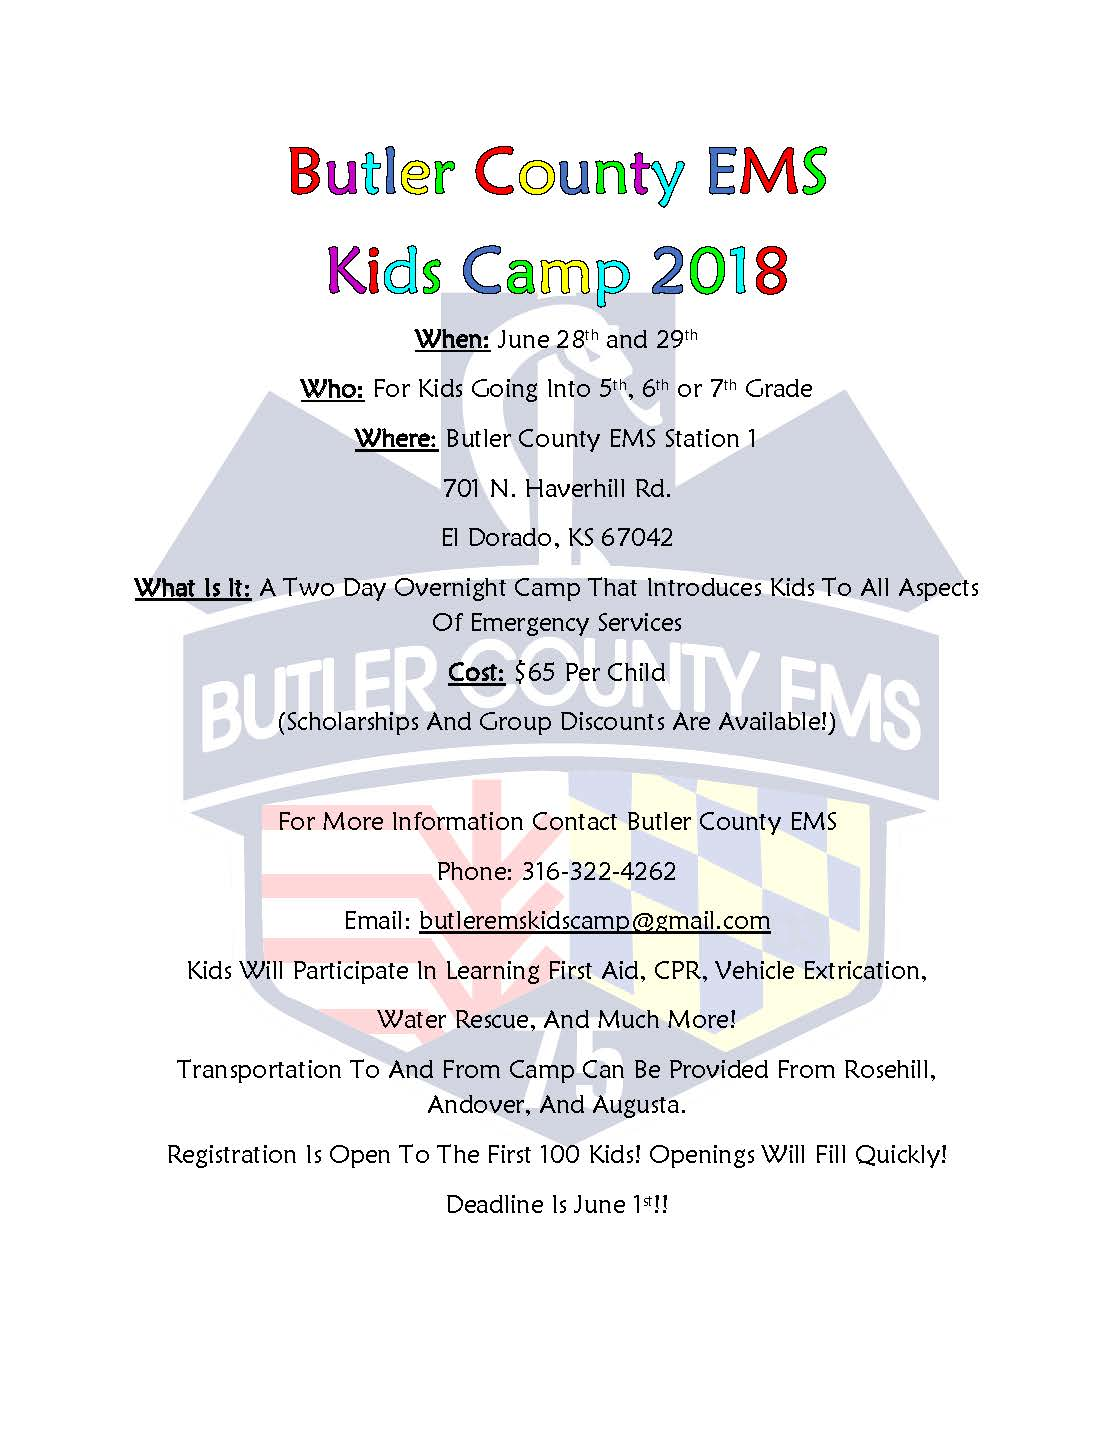 Kids Camp Flyer 2018